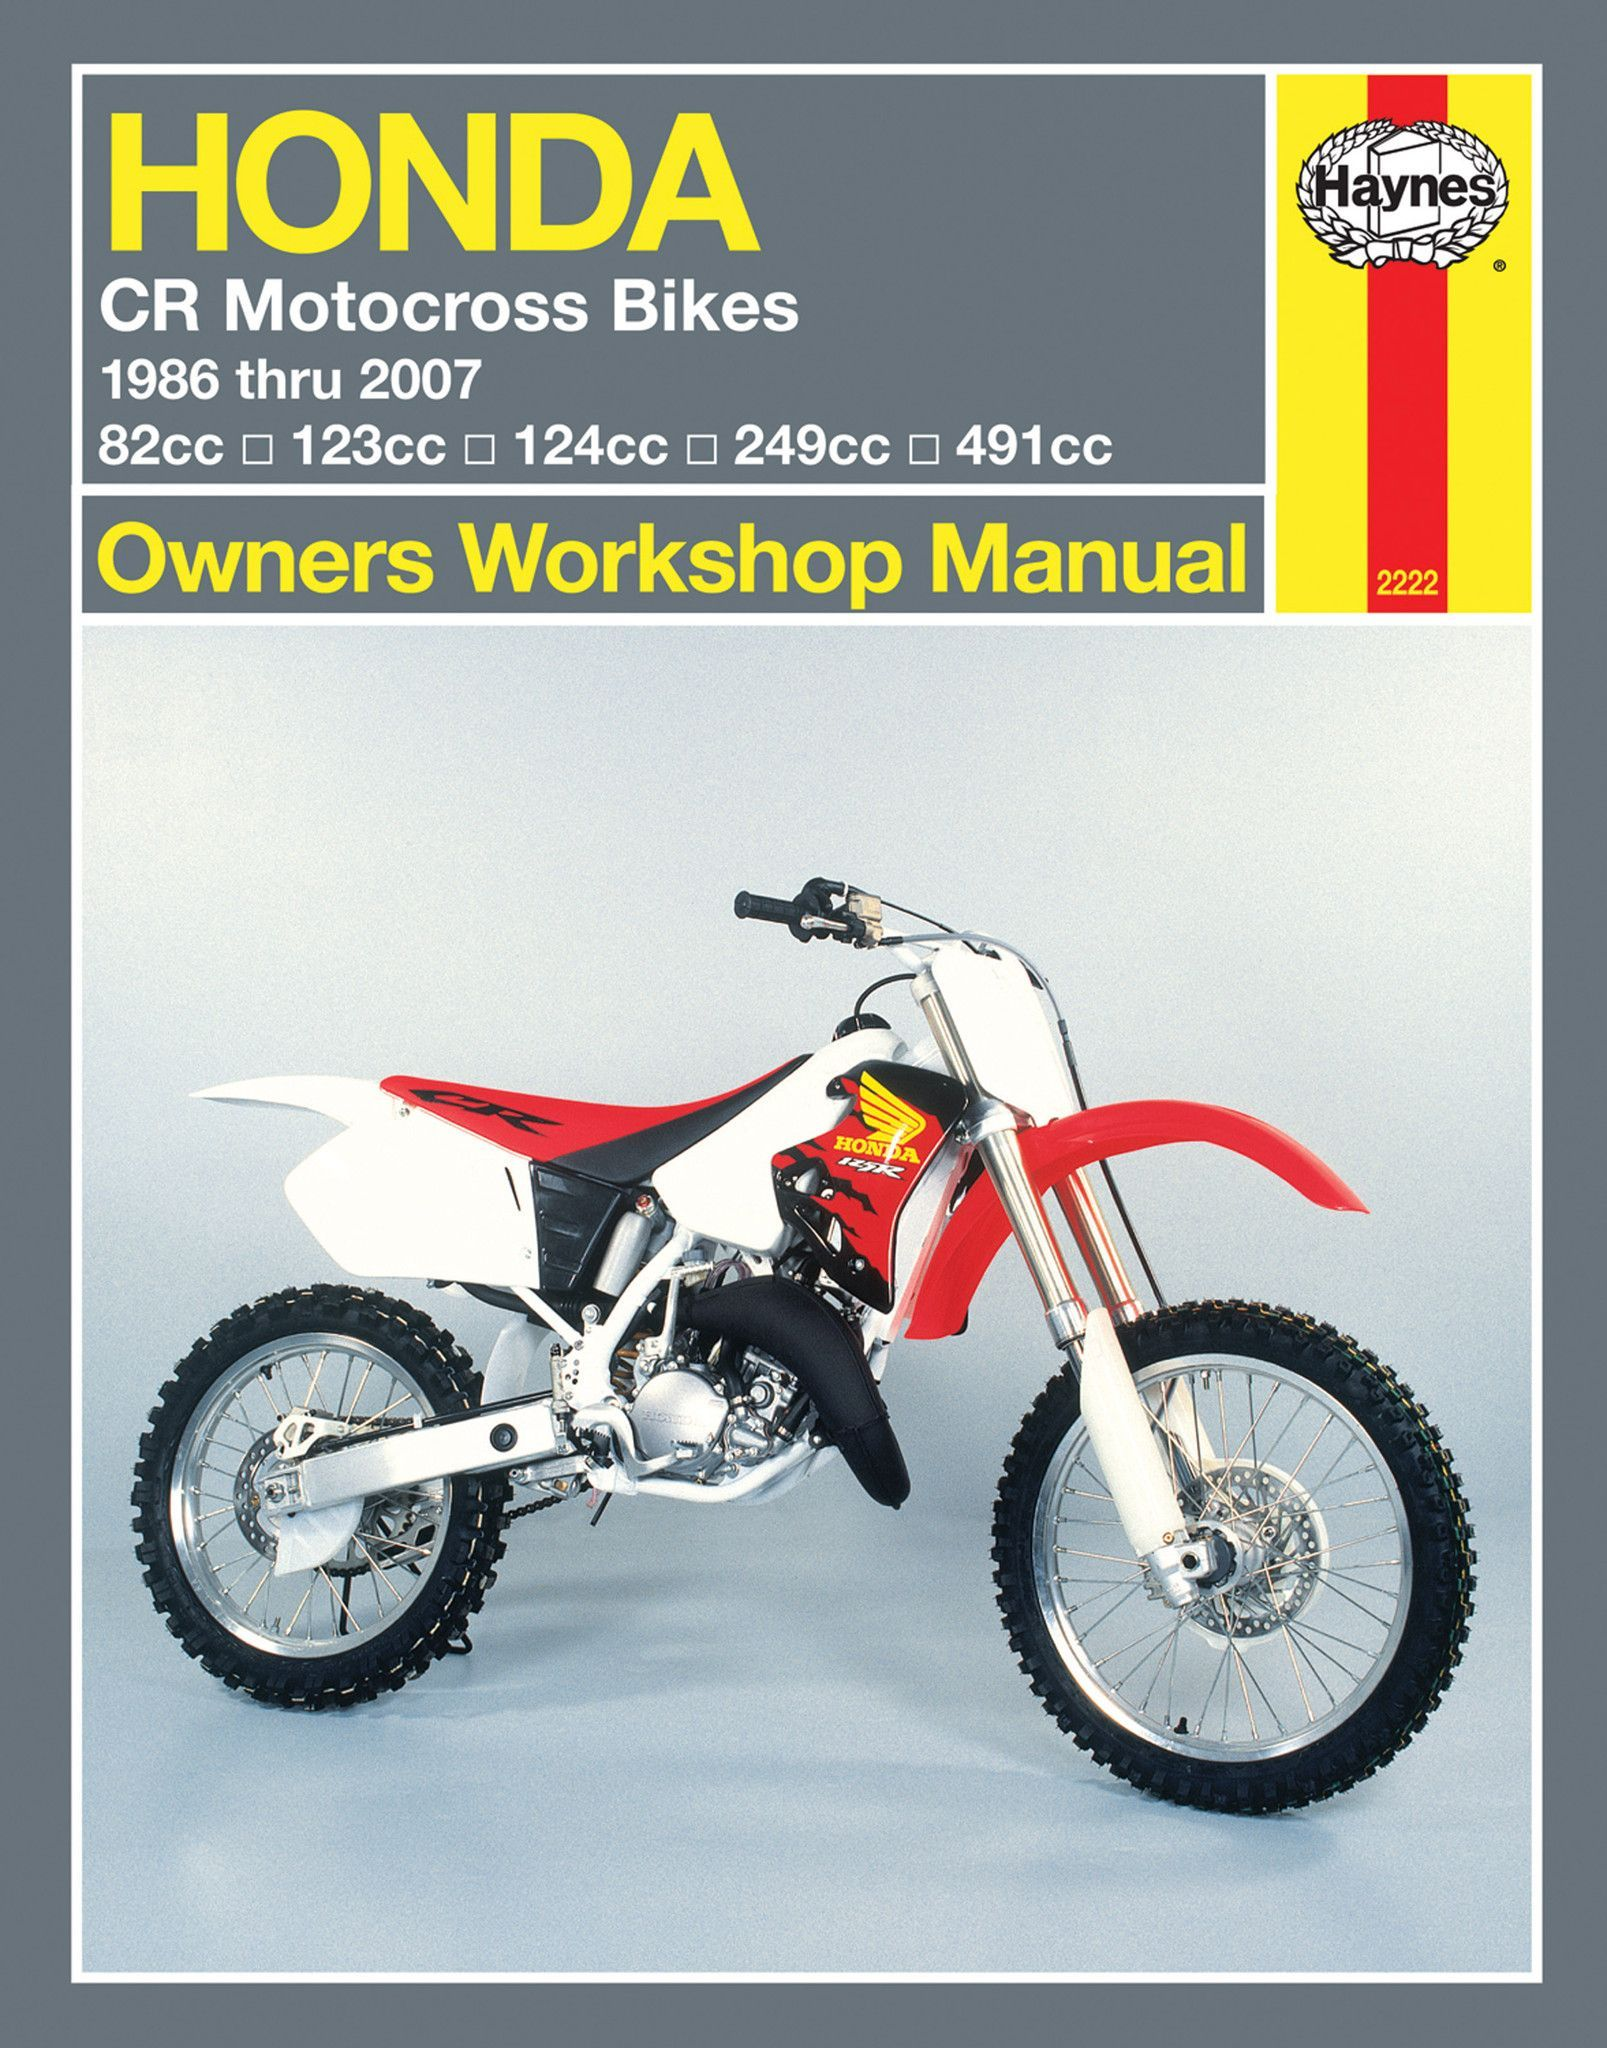 haynes m2222 repair manual for 1986 07 honda cr80 cr125r cr250r rh pinterest com 90 CR250 92 CR250